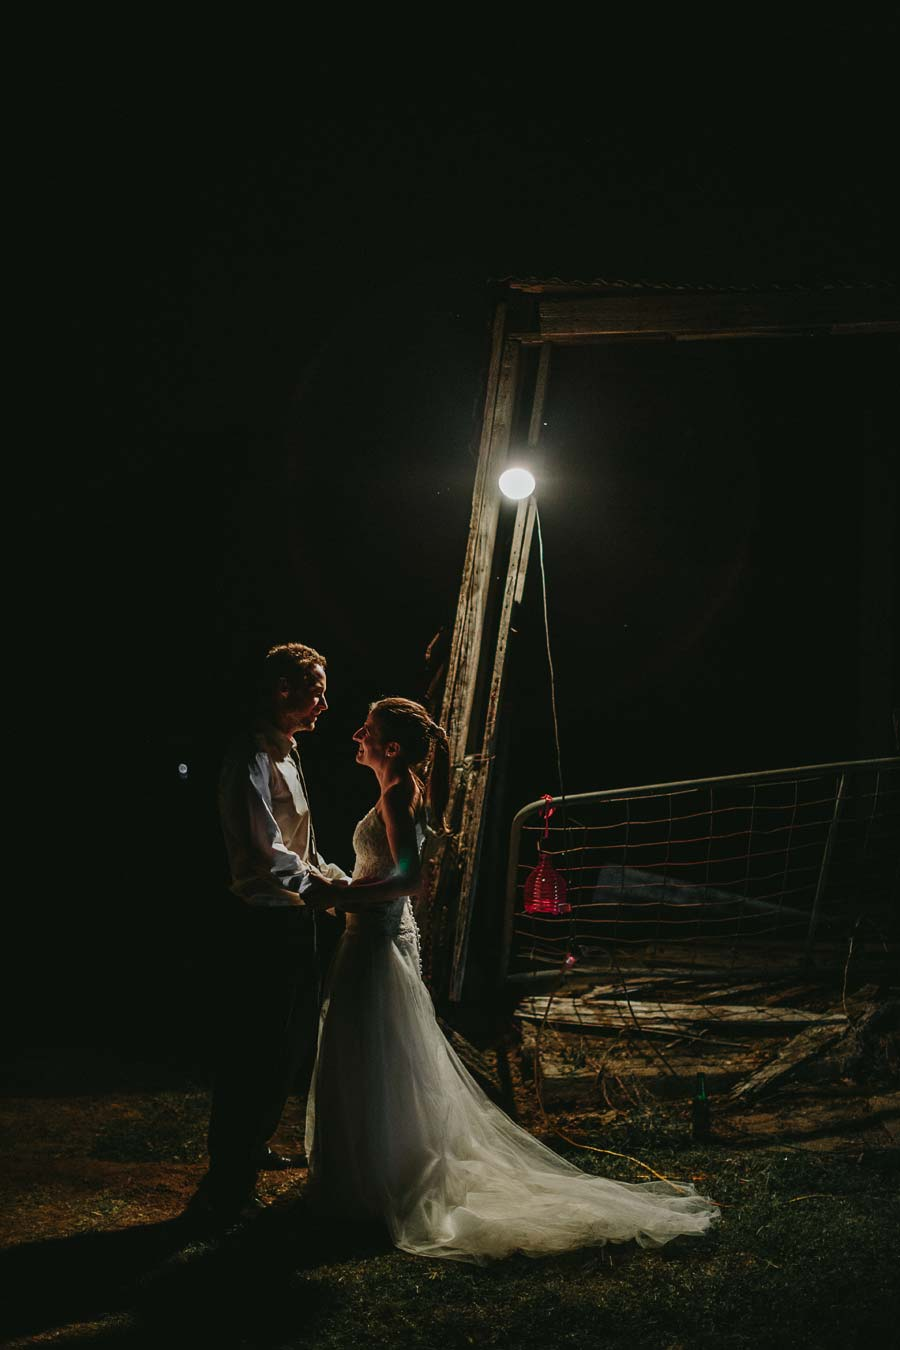 Melbourne farm night wedding portrait